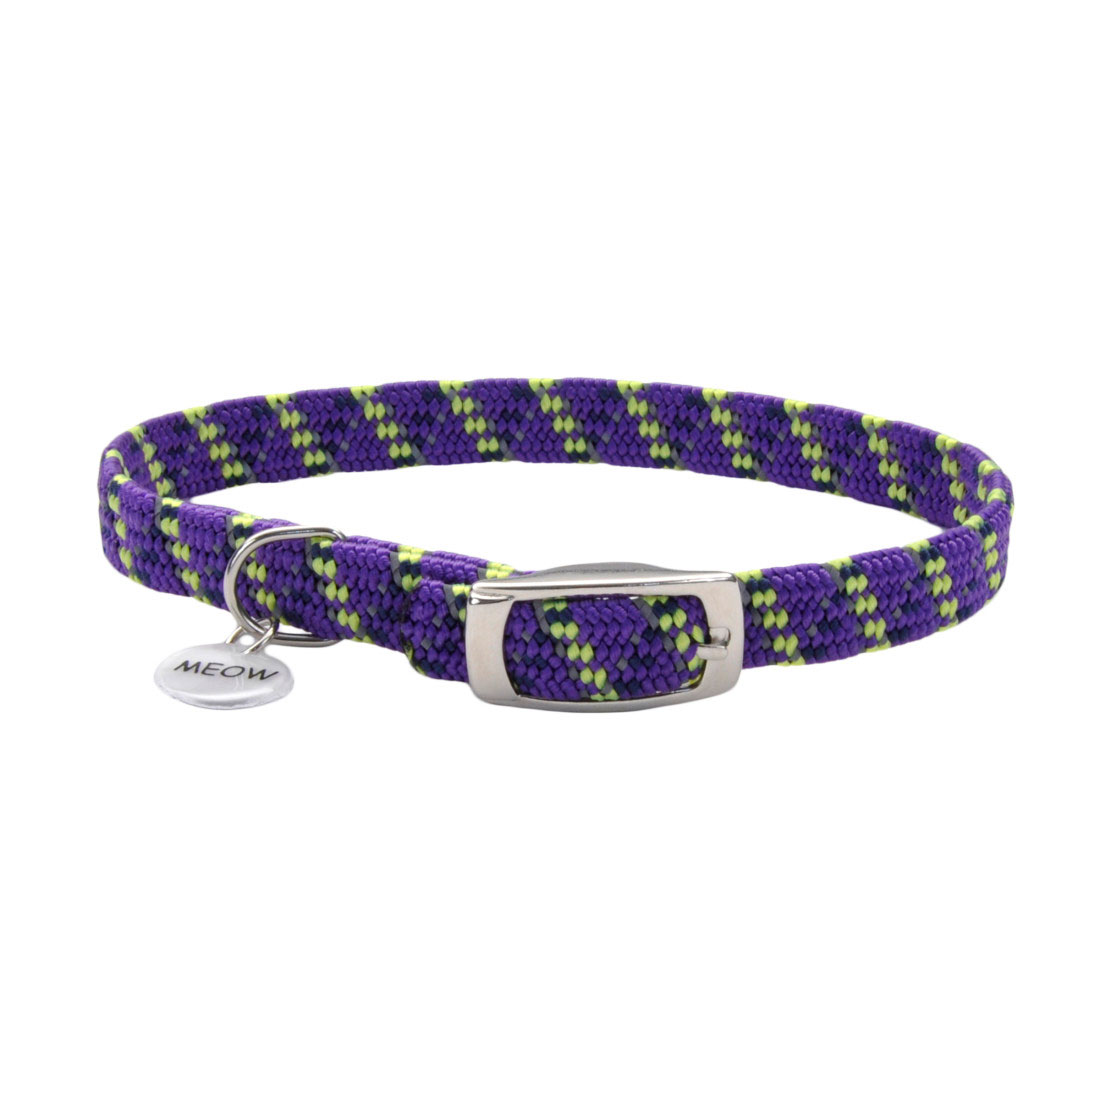 ElastaCat® Reflective Safety Stretch Collar with Reflective Charm